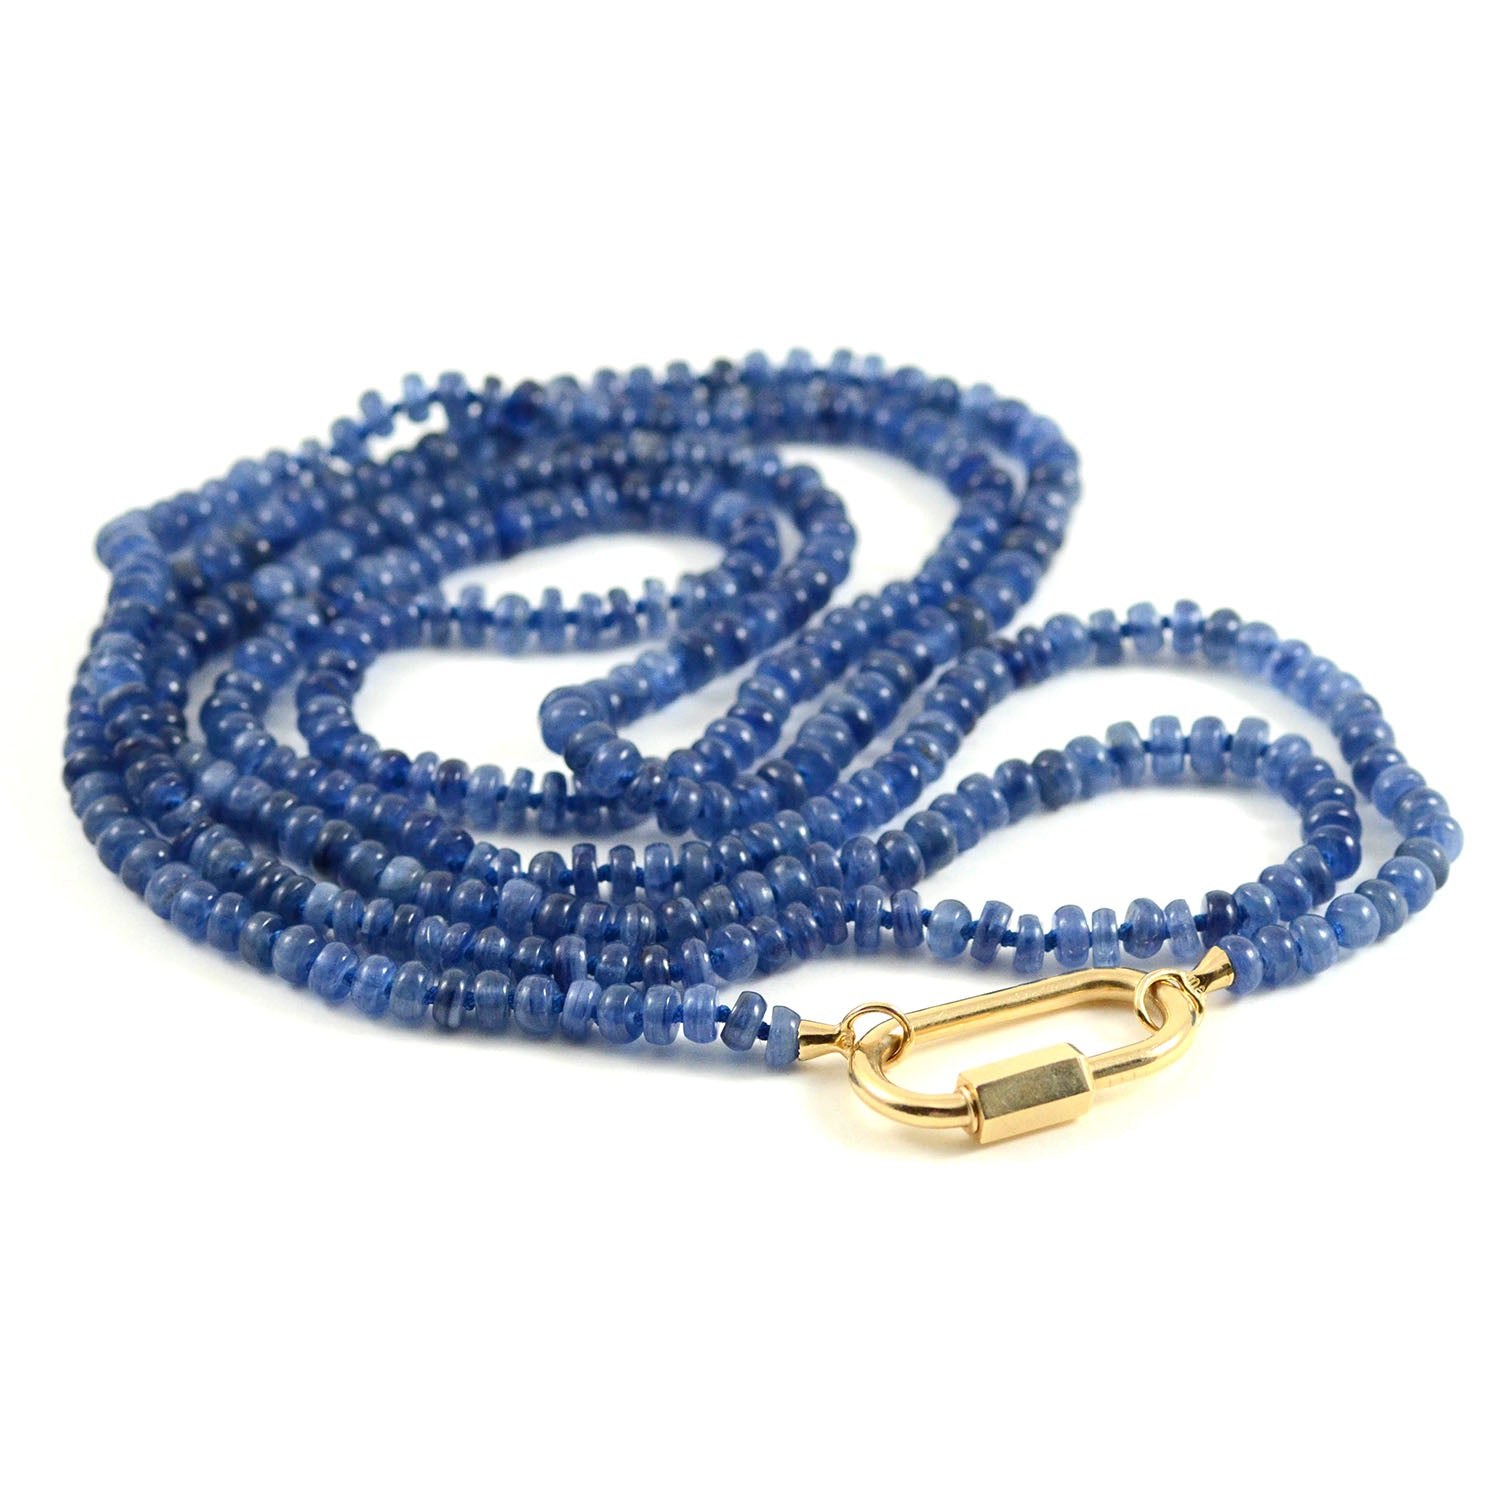 Marla Aaron Necklace Kyanite Beads Yellow Gold End Loops